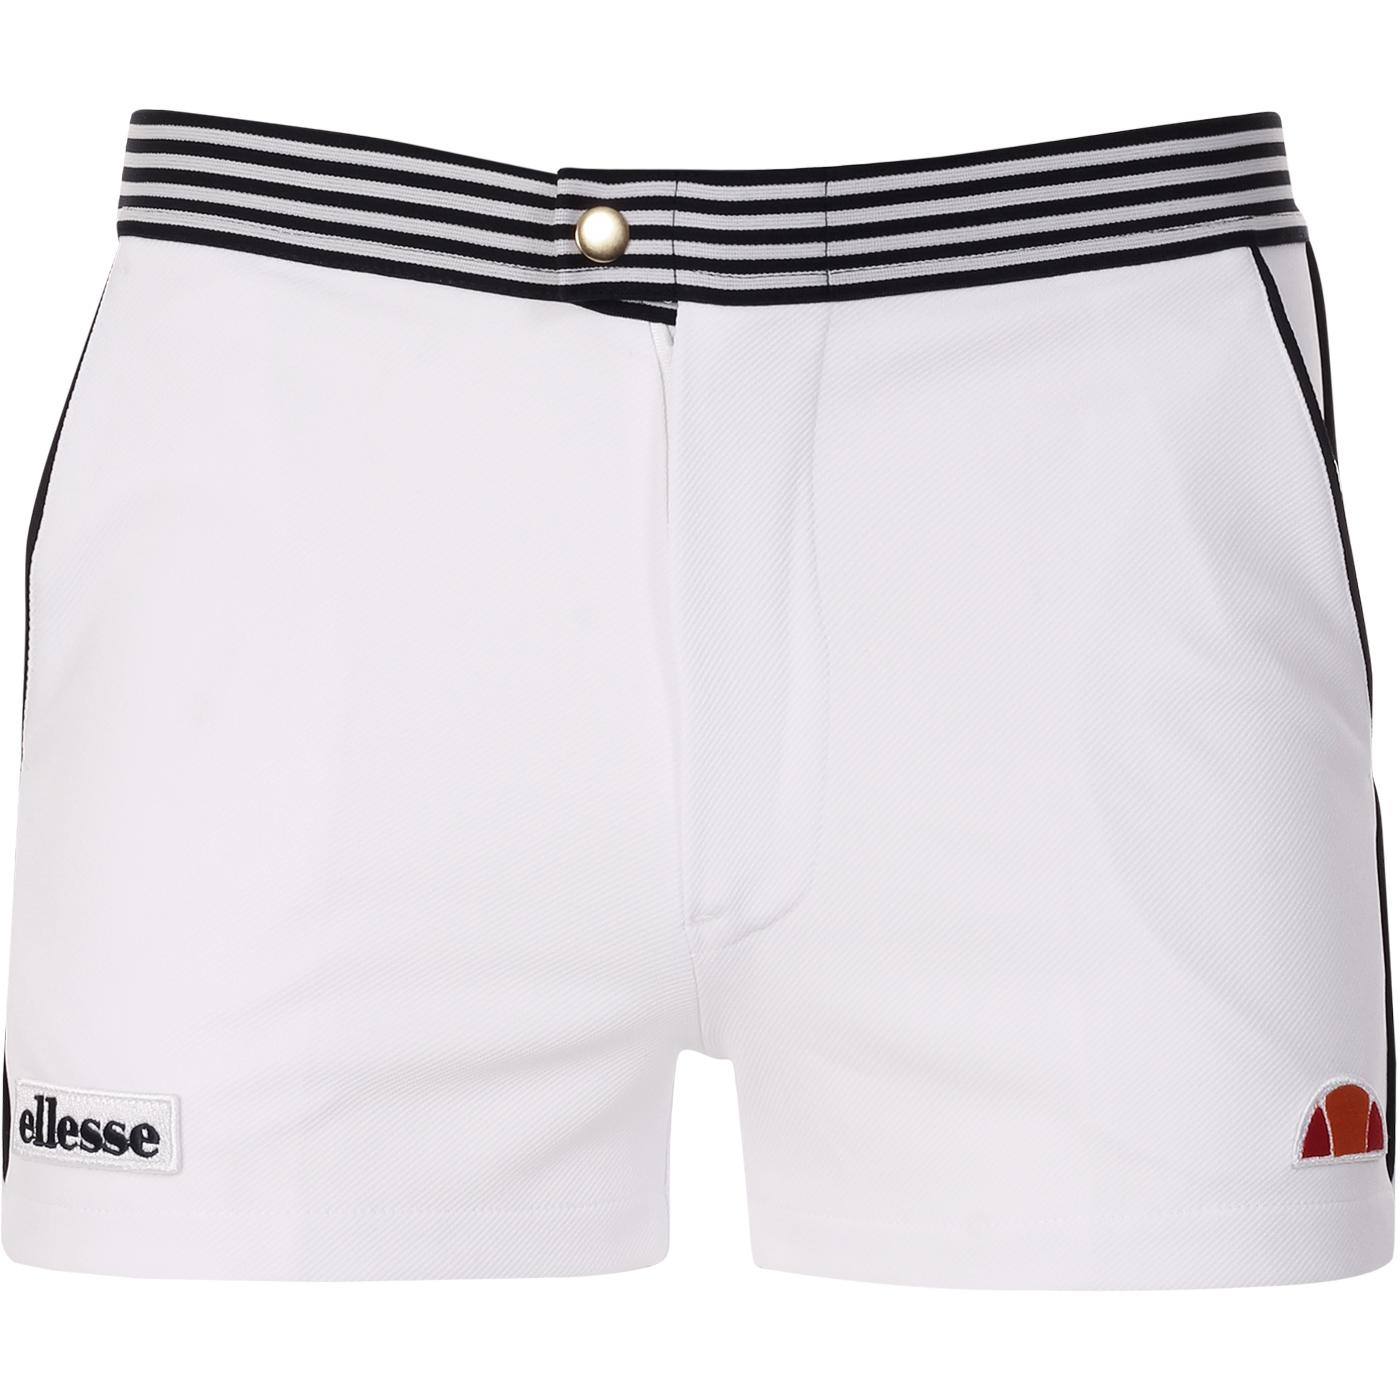 Renzo ELLESSE Men's Retro Tennis Shorts W